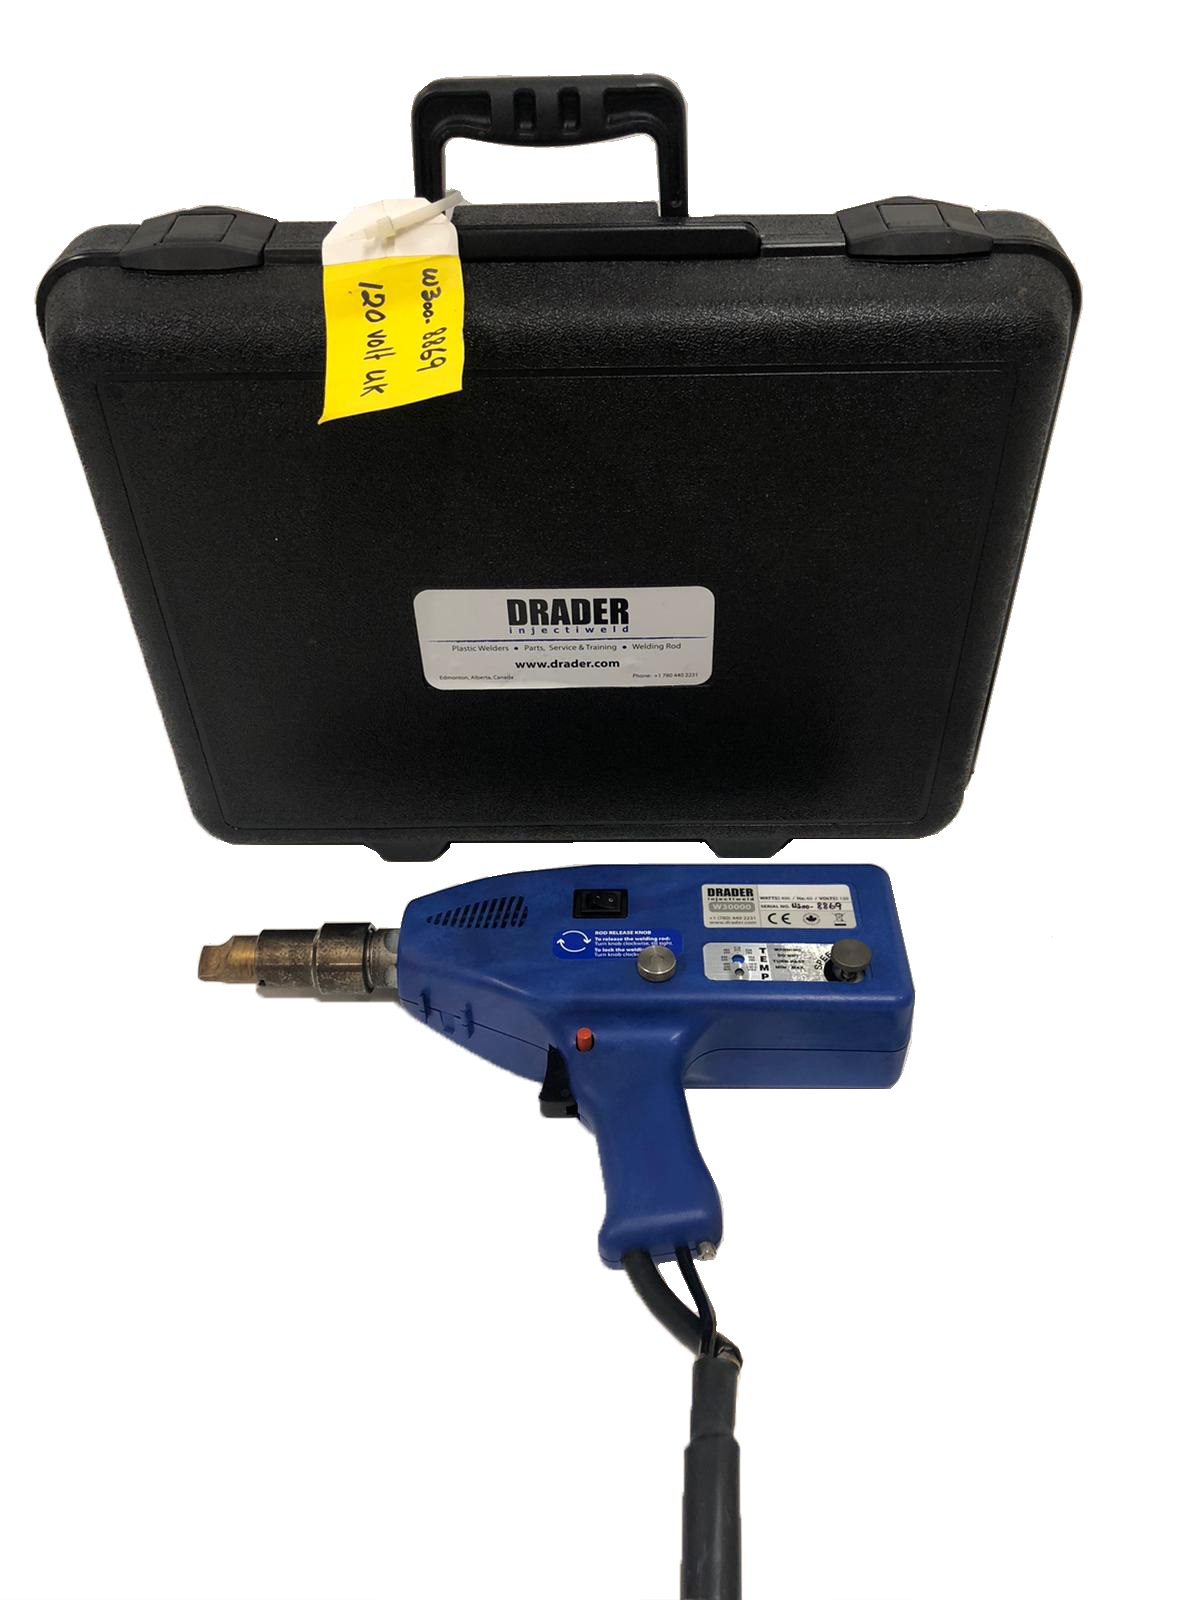 110v Drader Injectiweld - Ex-Demo - Plastic Injection Welder